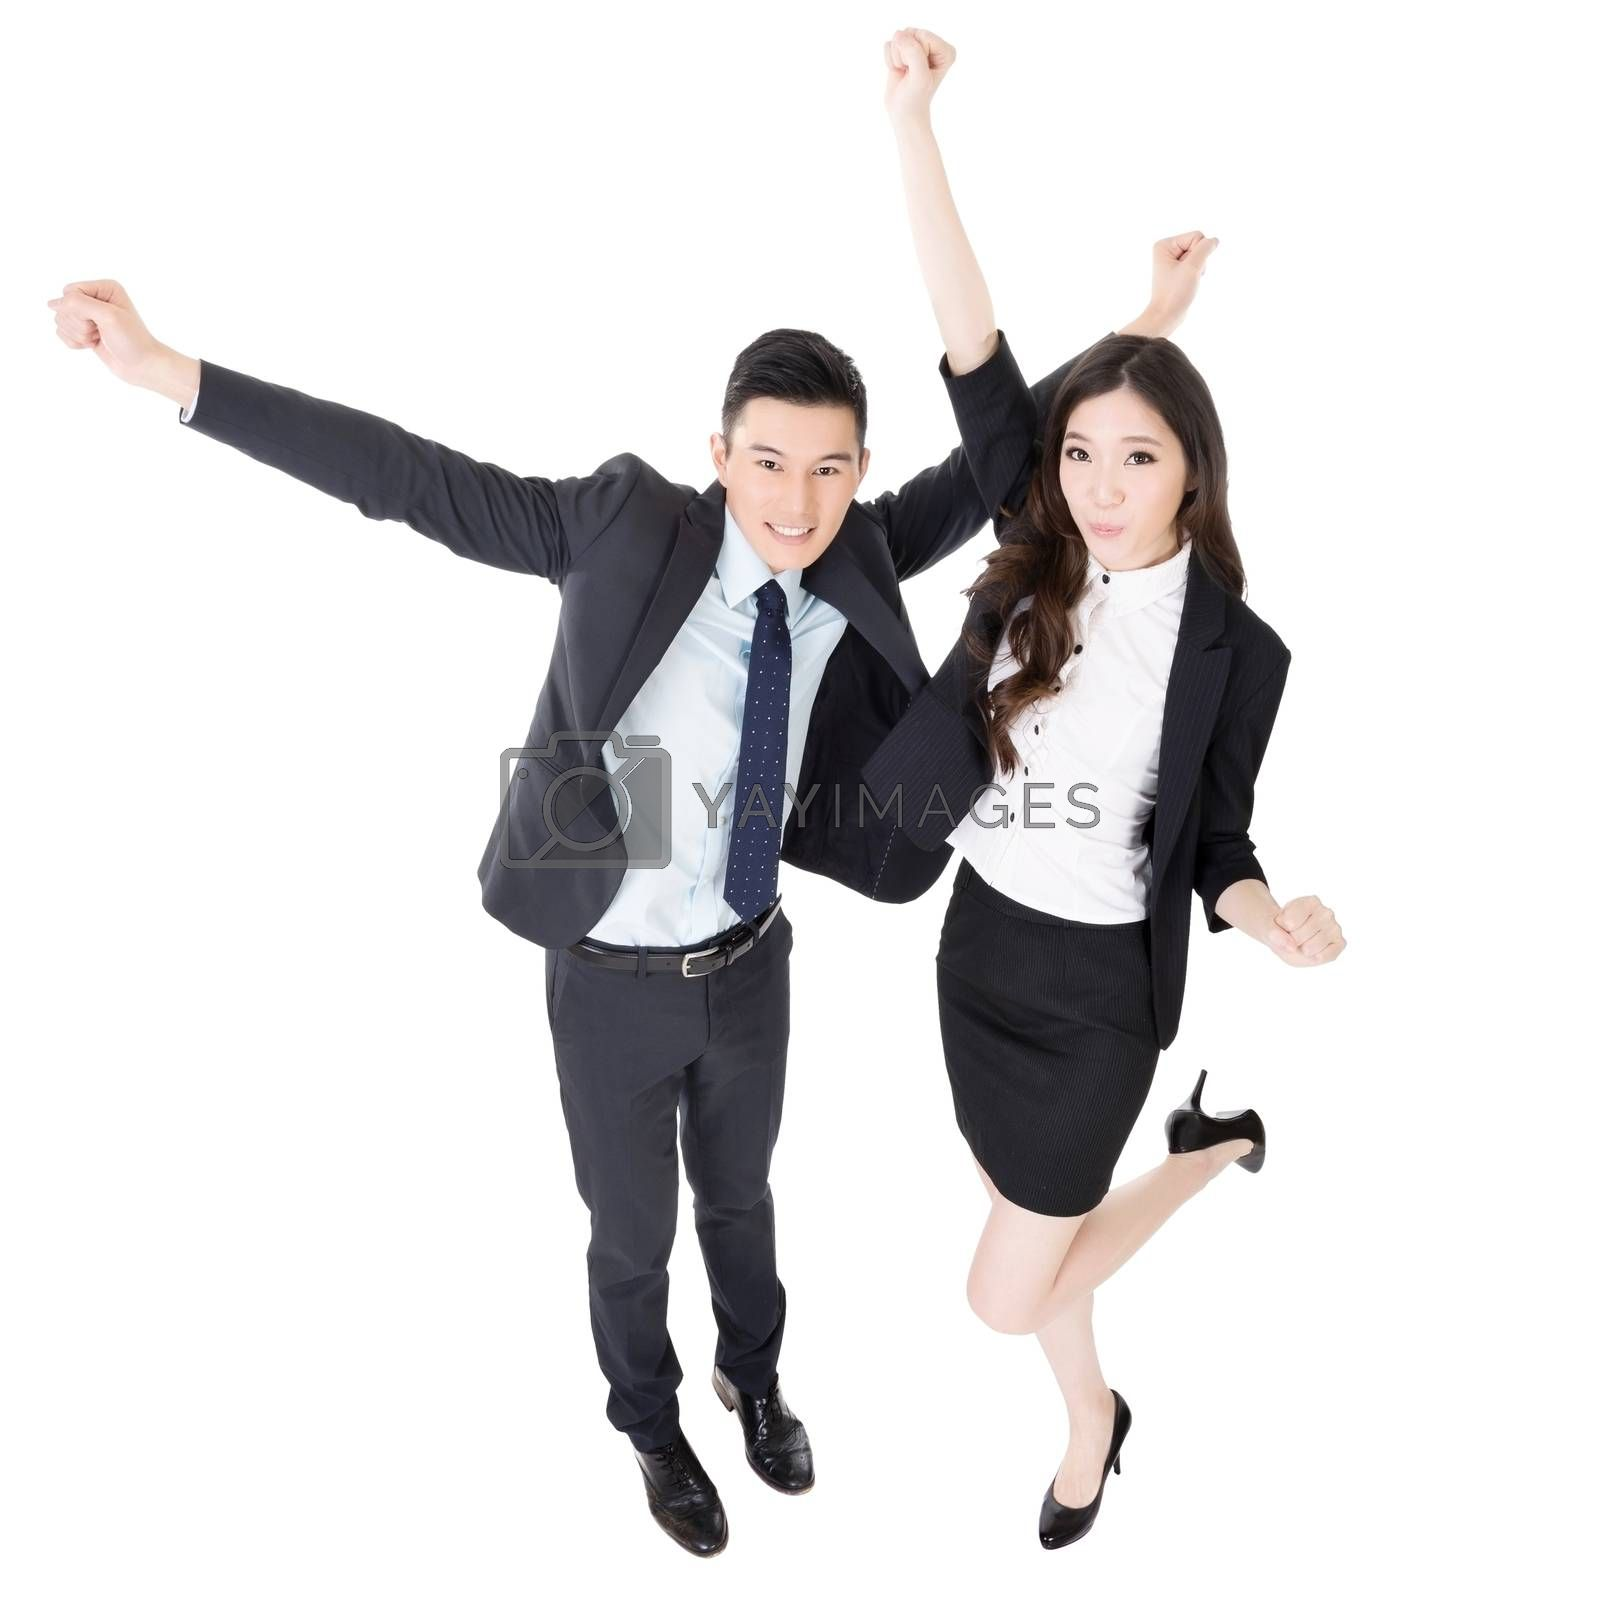 Royalty free image of Exciting business man and woman by elwynn